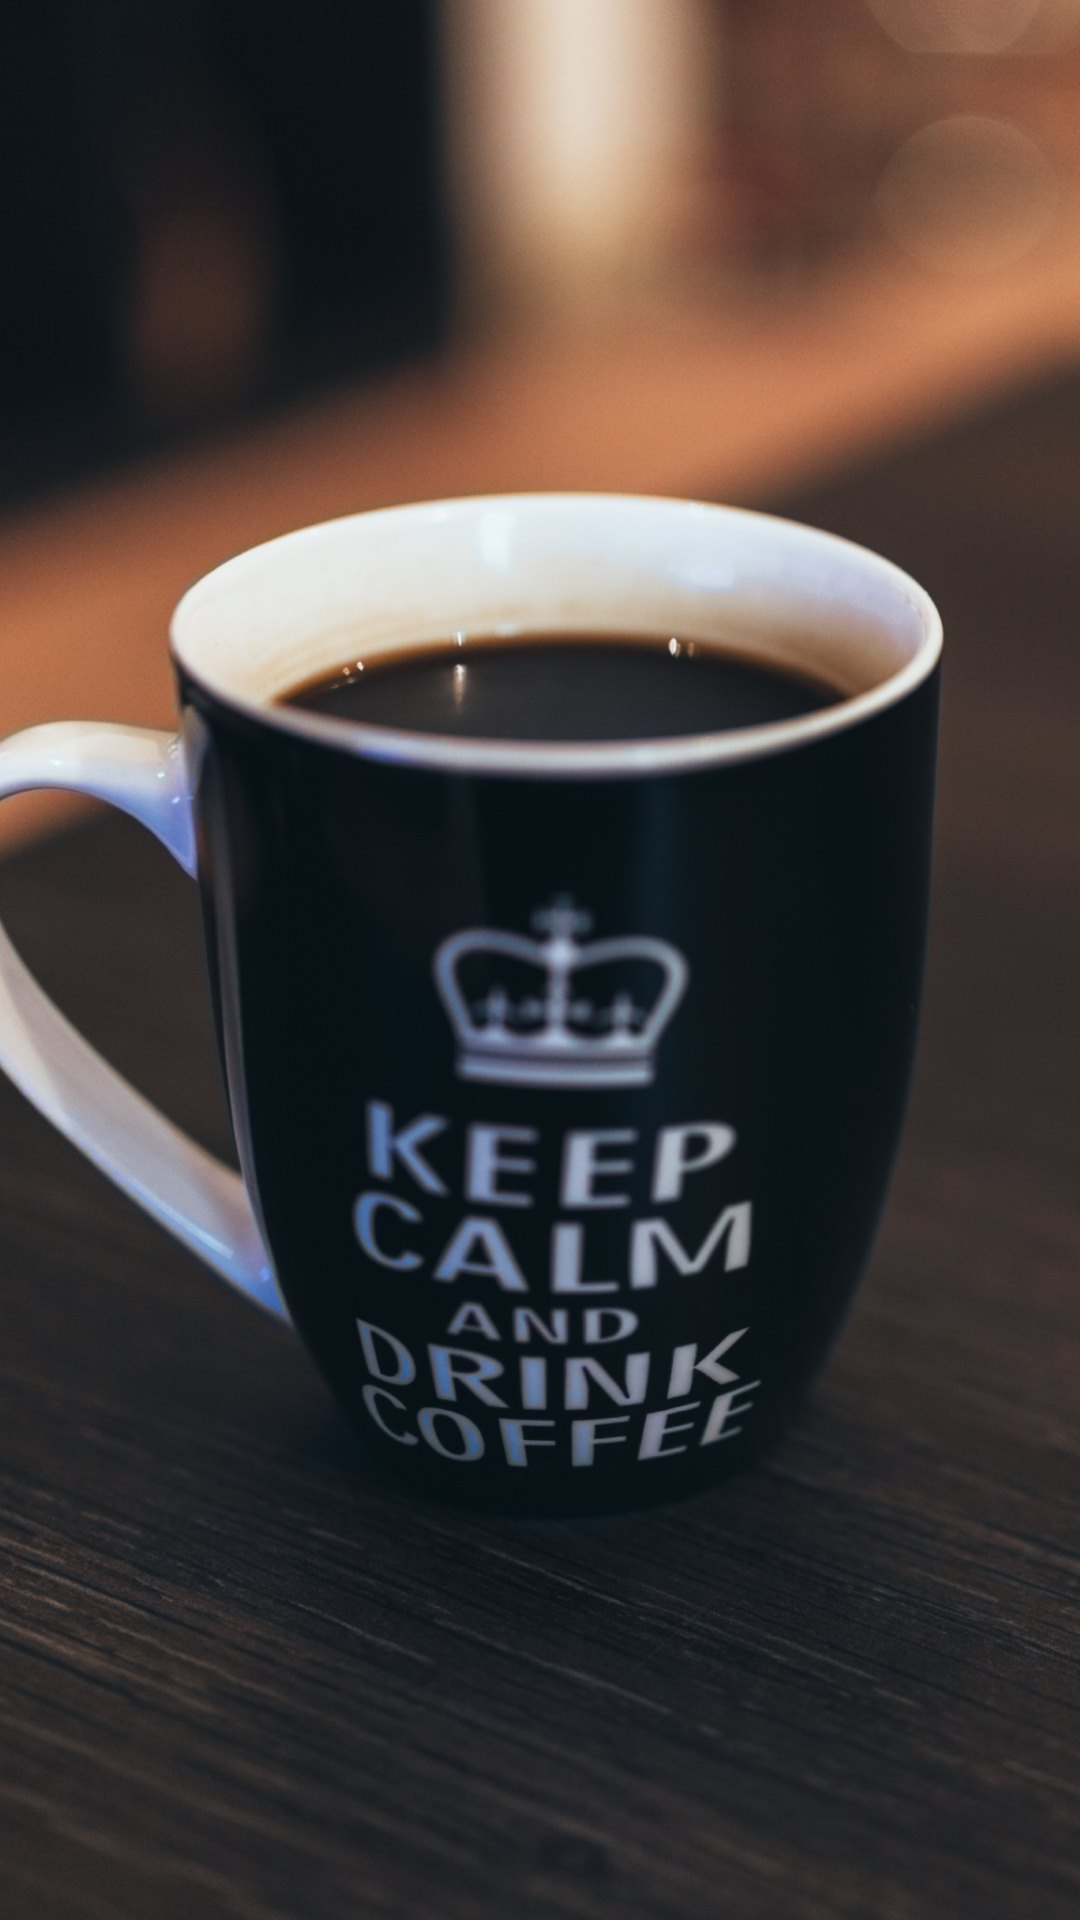 keep calm and drink coffee wallpaper hd wallpapers